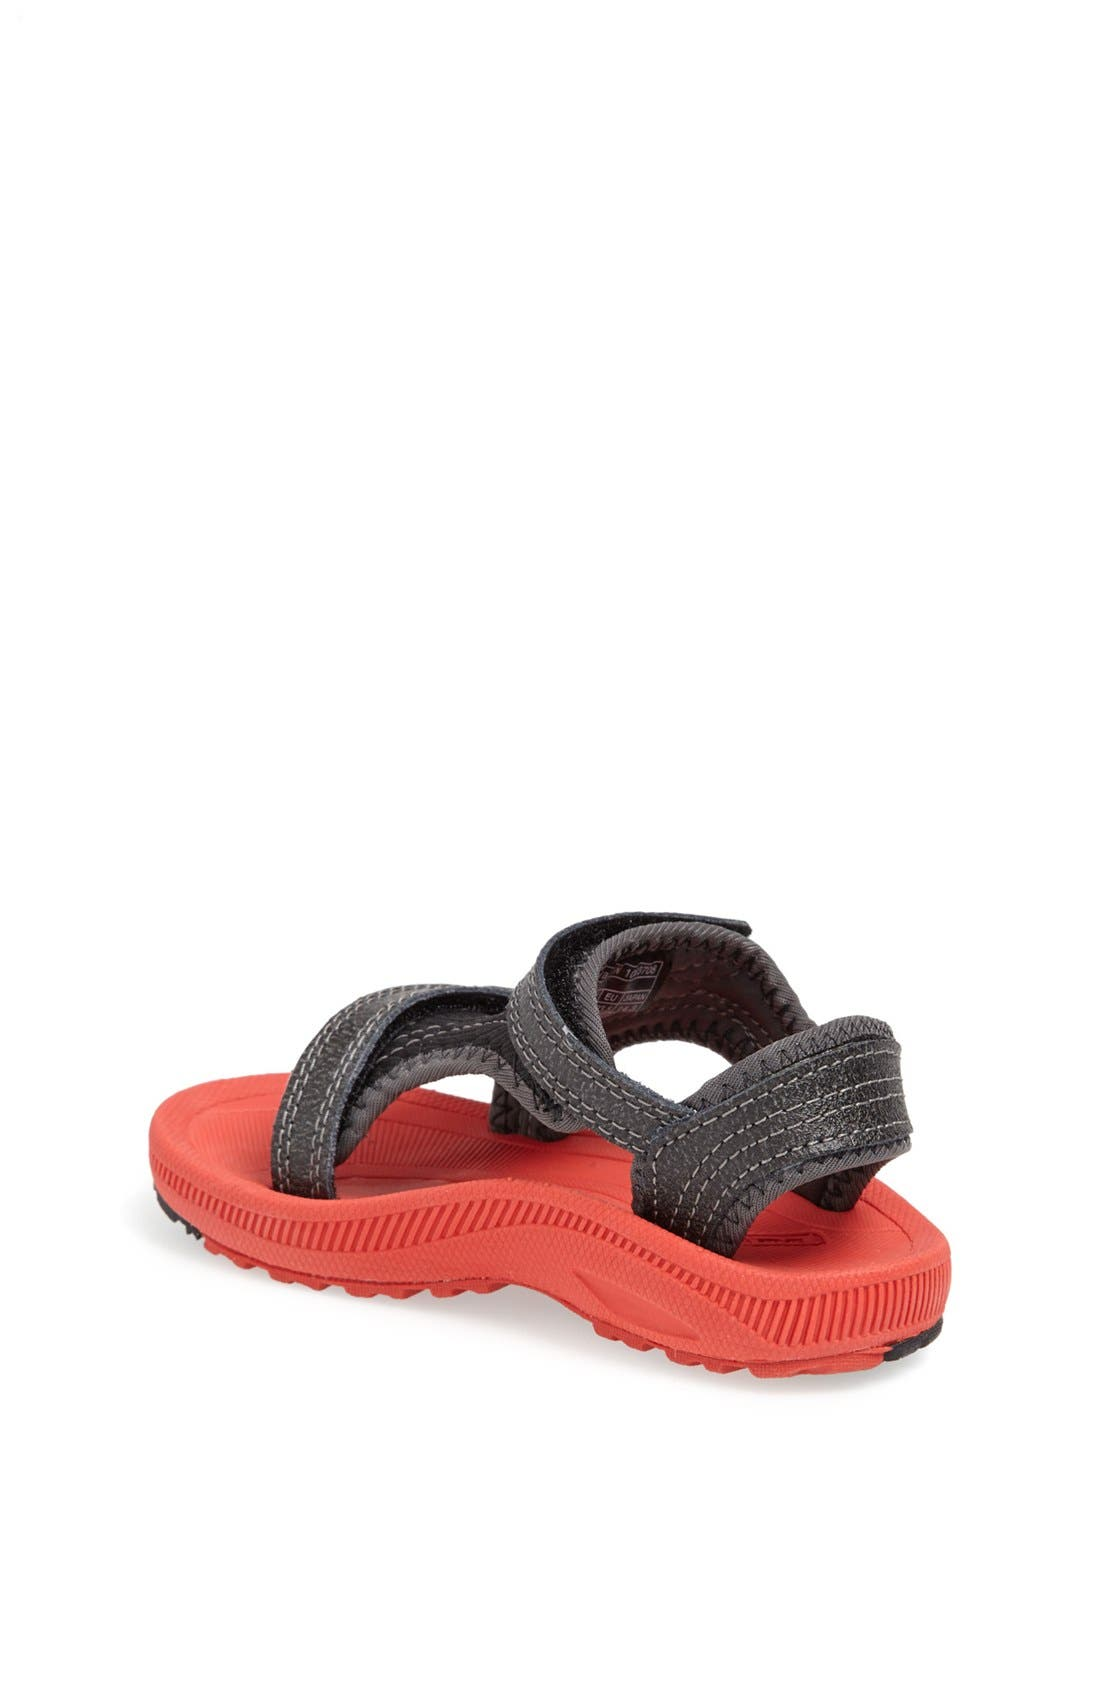 Alternate Image 2  - Teva 'Psyclone 3' Sandal (Baby, Walker, Toddler & Little Kid)